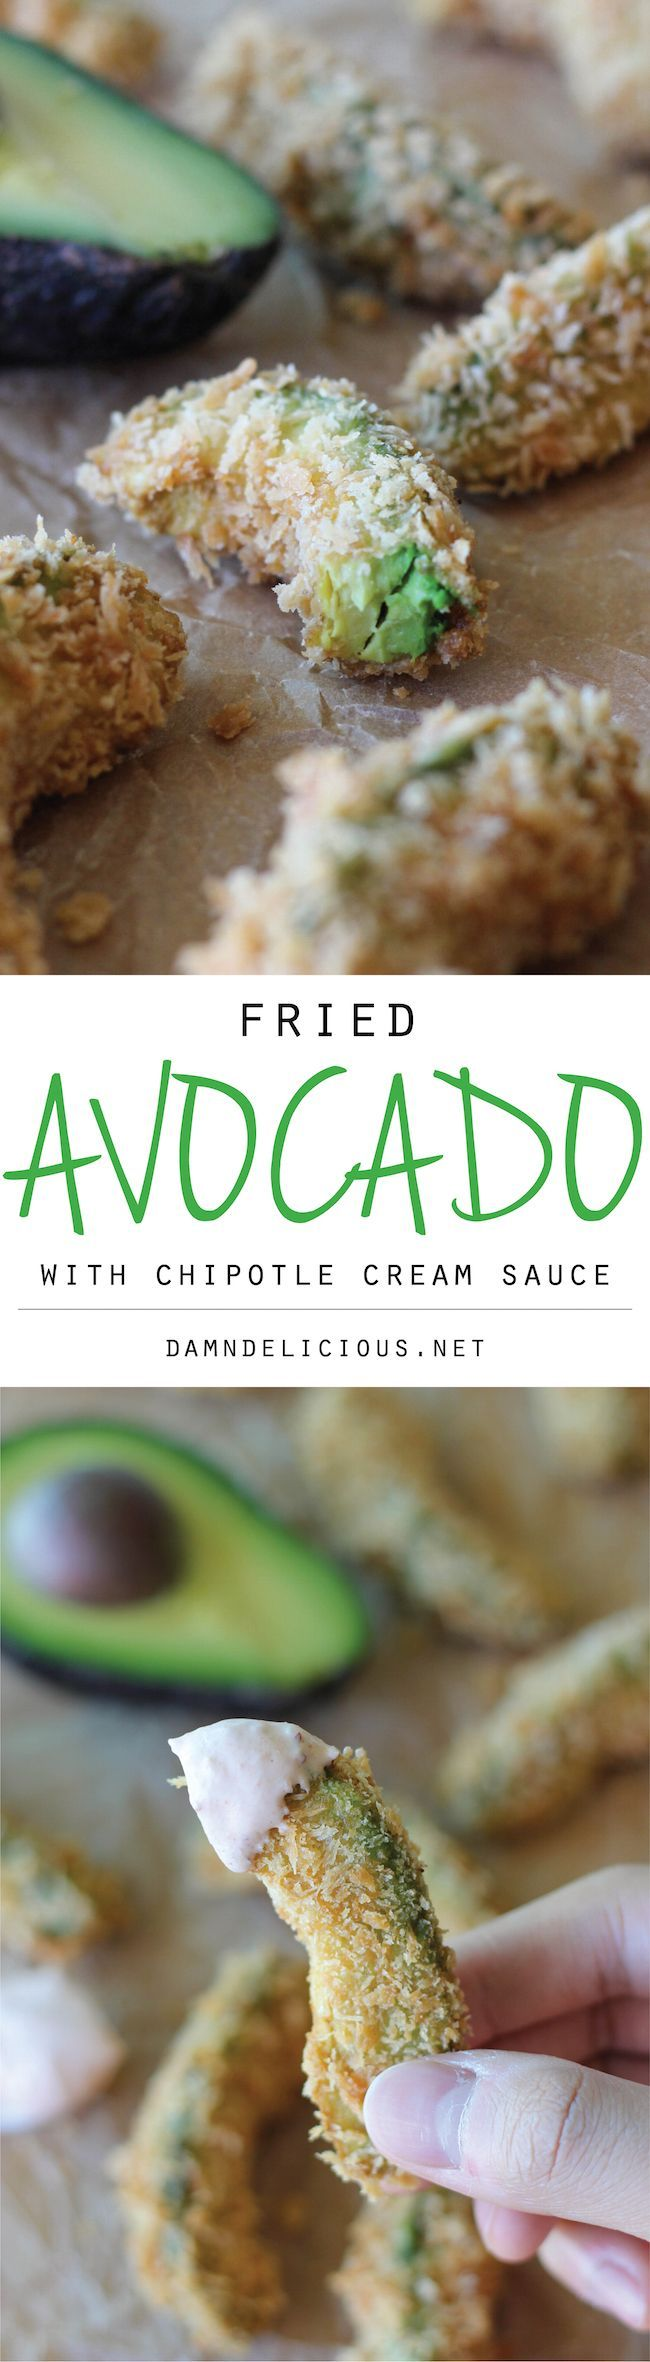 Fried Avocado with Chipotle Cream Sauce - Can't wait to try these!